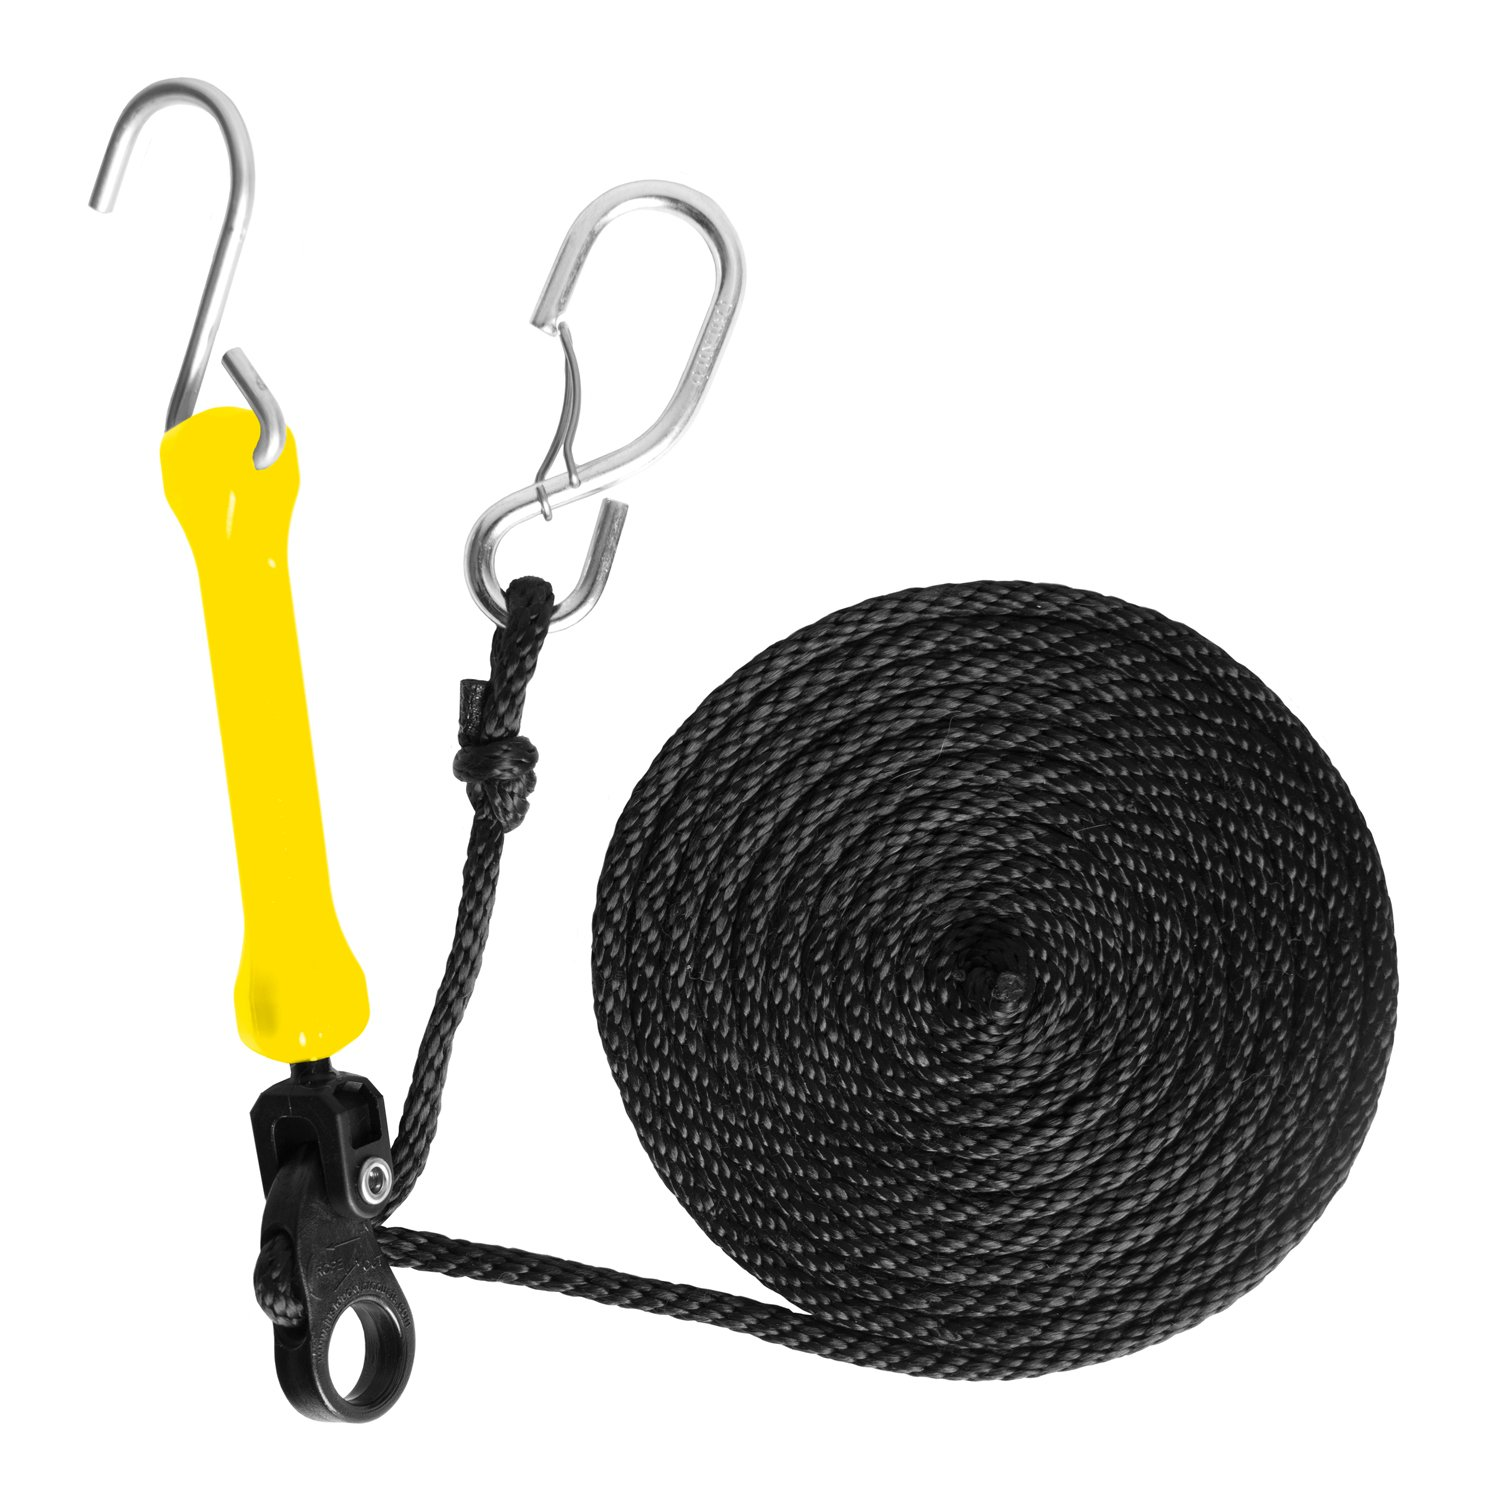 The Perfect Bungee by BihlerFlex Safety Green PTDG Adjustable Bungee Perfect Tie-Down with Spring-Loaded Gated S-Hooks 12